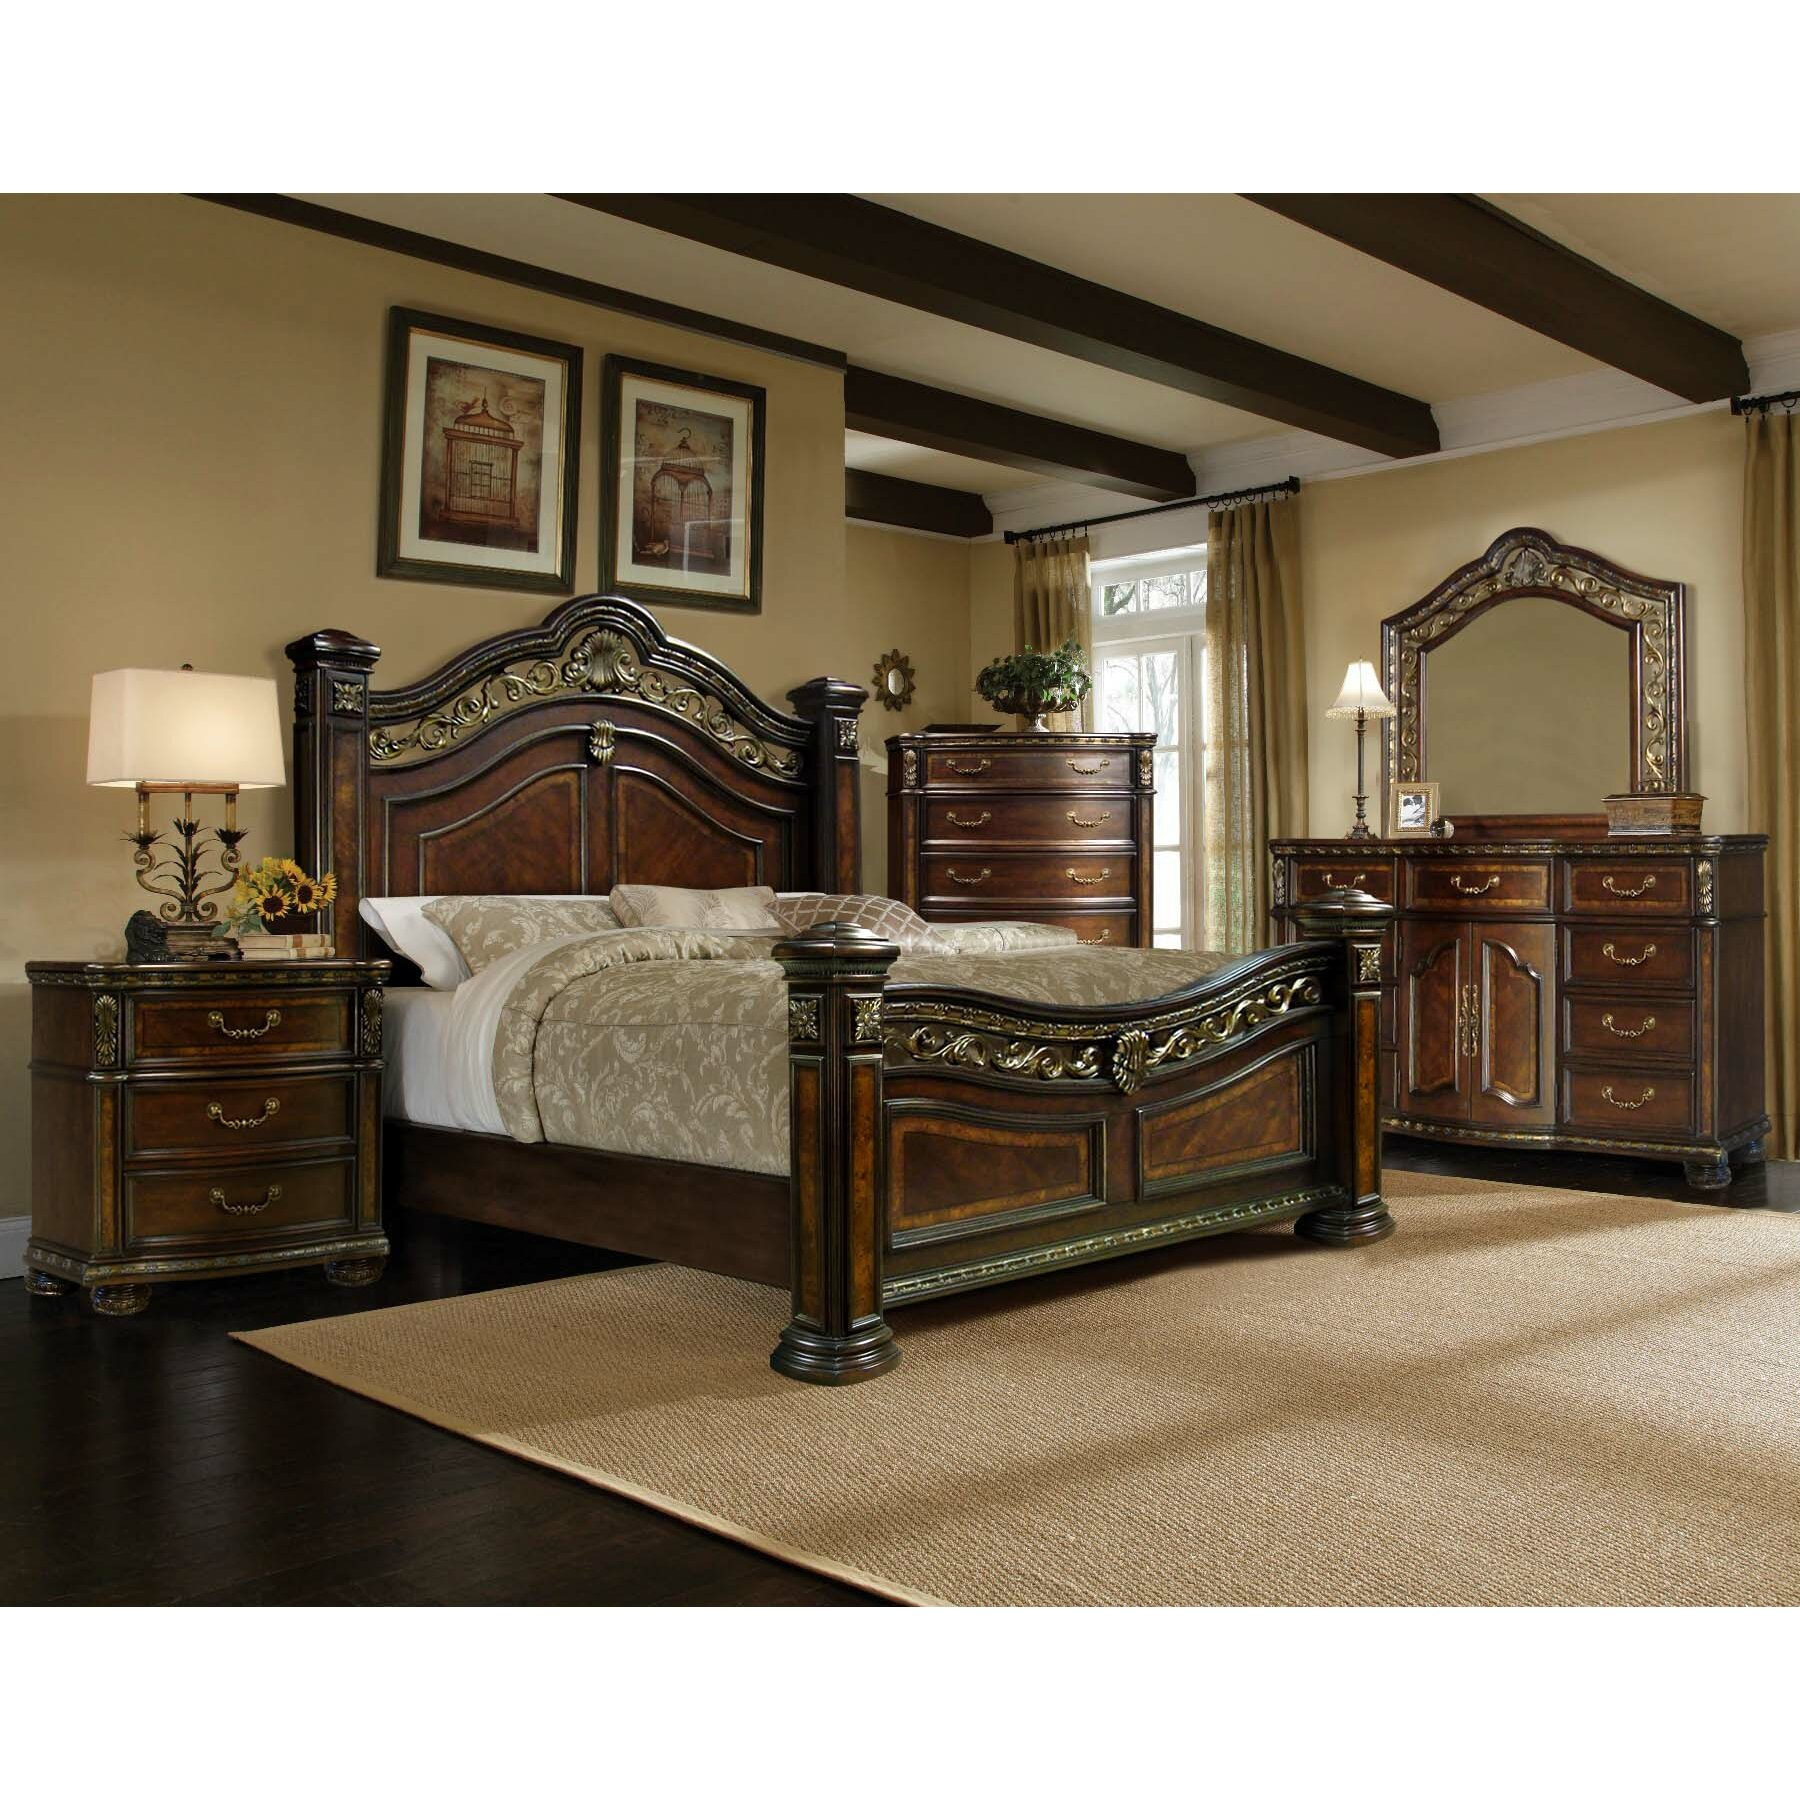 Old World Bedroom Furniture: Ultimate Accents Old World 5 Pc Bedroom Set